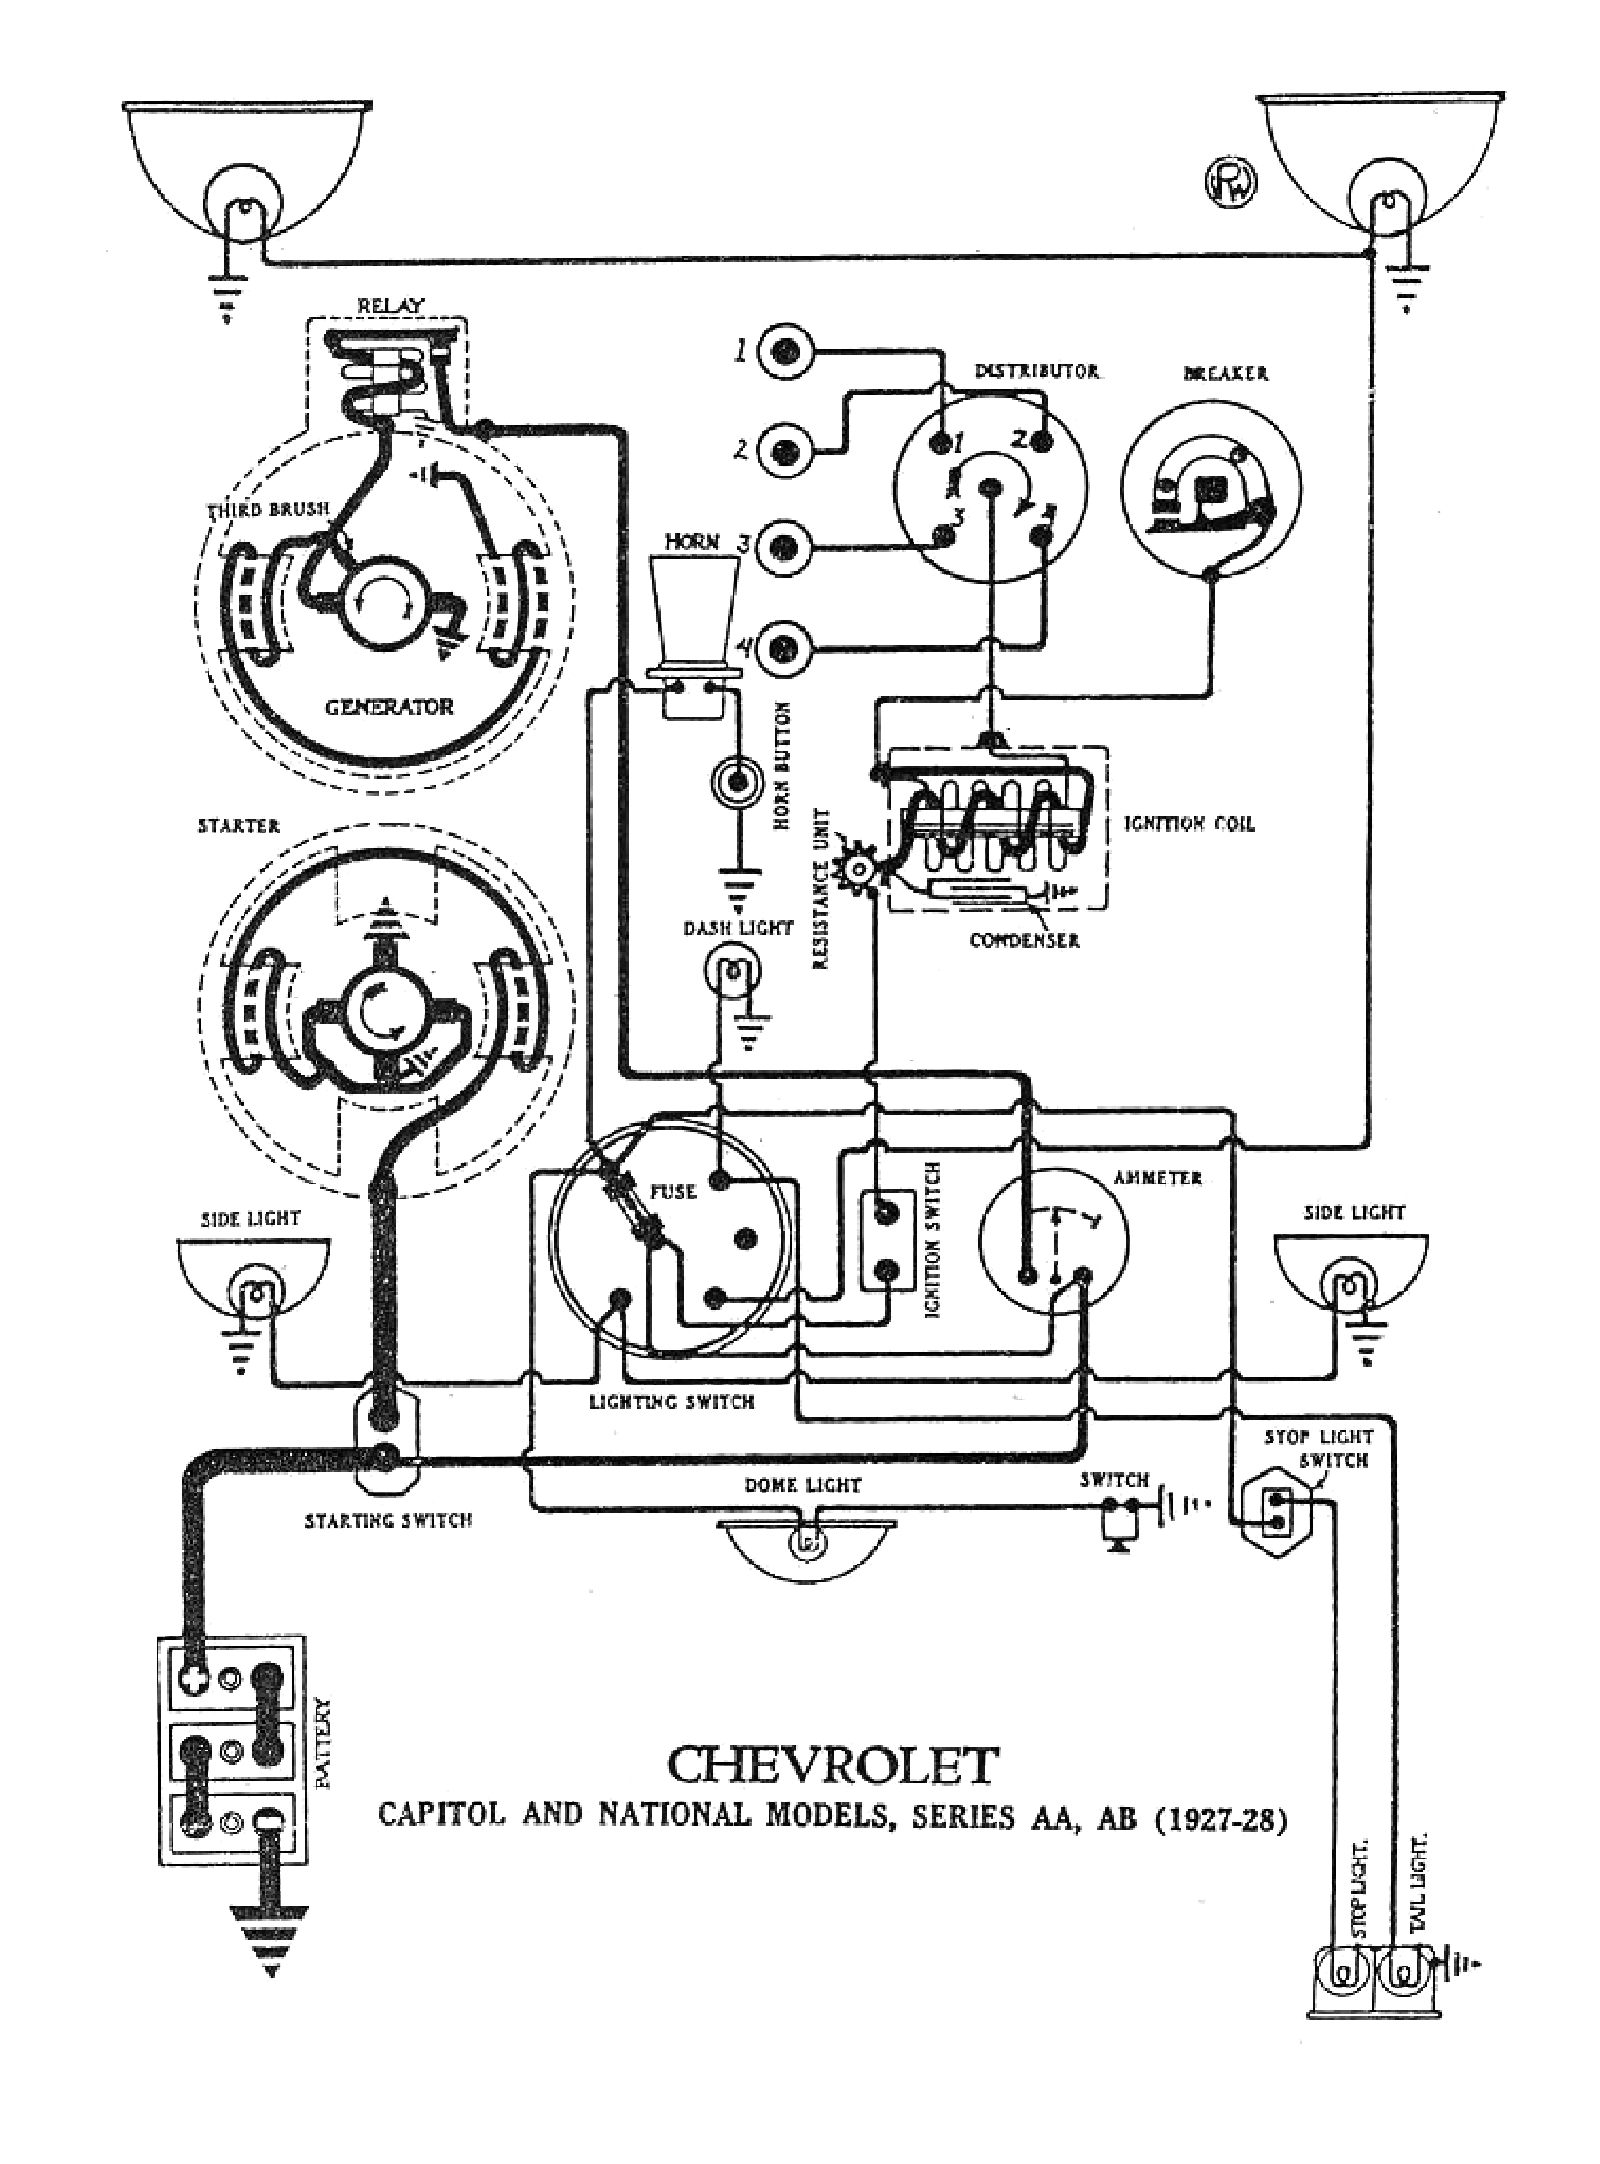 Chevrolet Headlight Switch Wiring Diagram Free Download 98 Chevy Diagramschevrolet 17